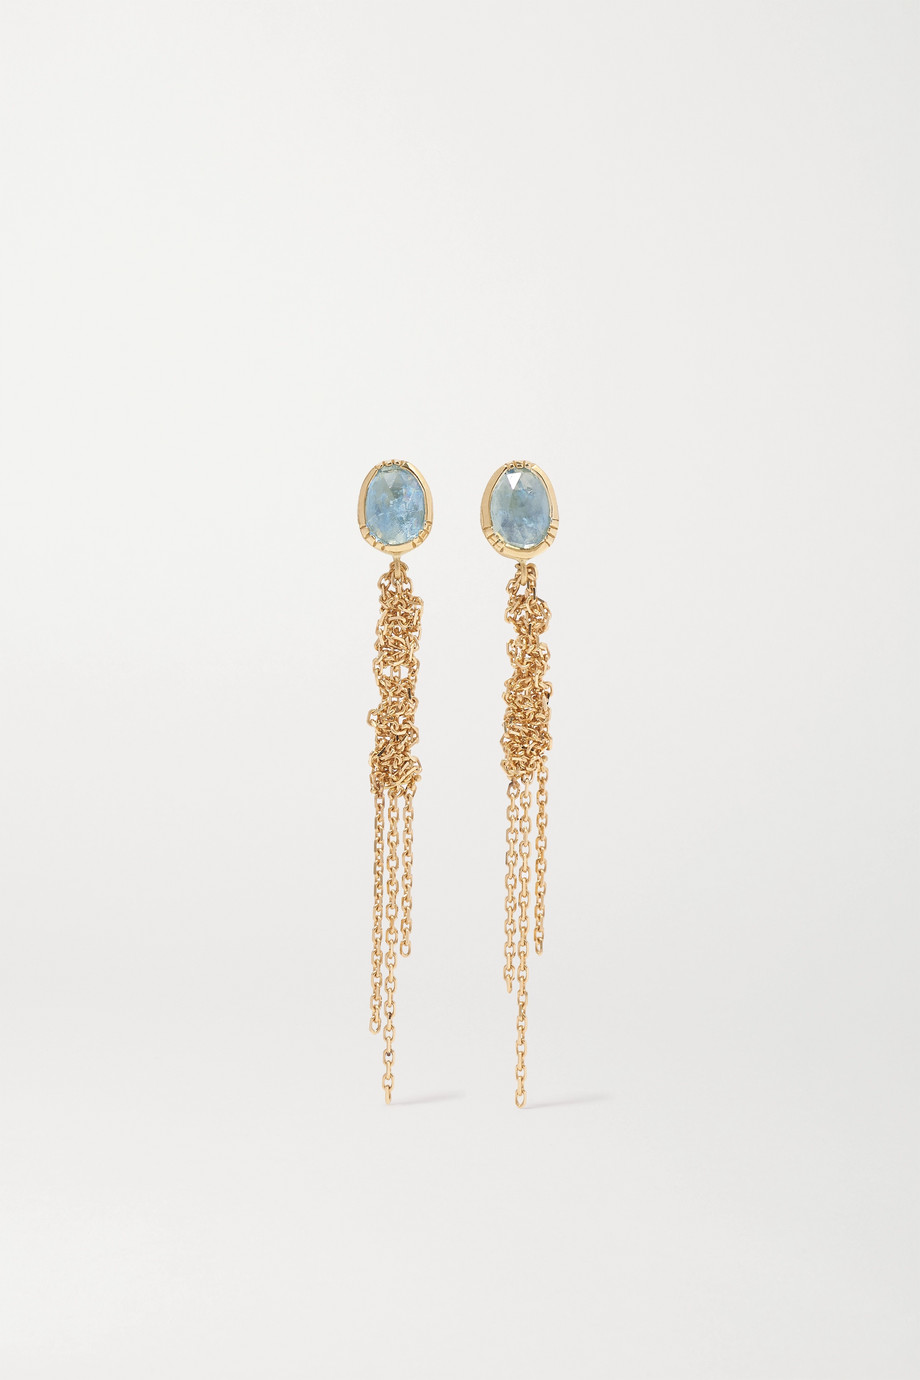 Brooke Gregson Waterfall 18-karat gold aquamarine earrings